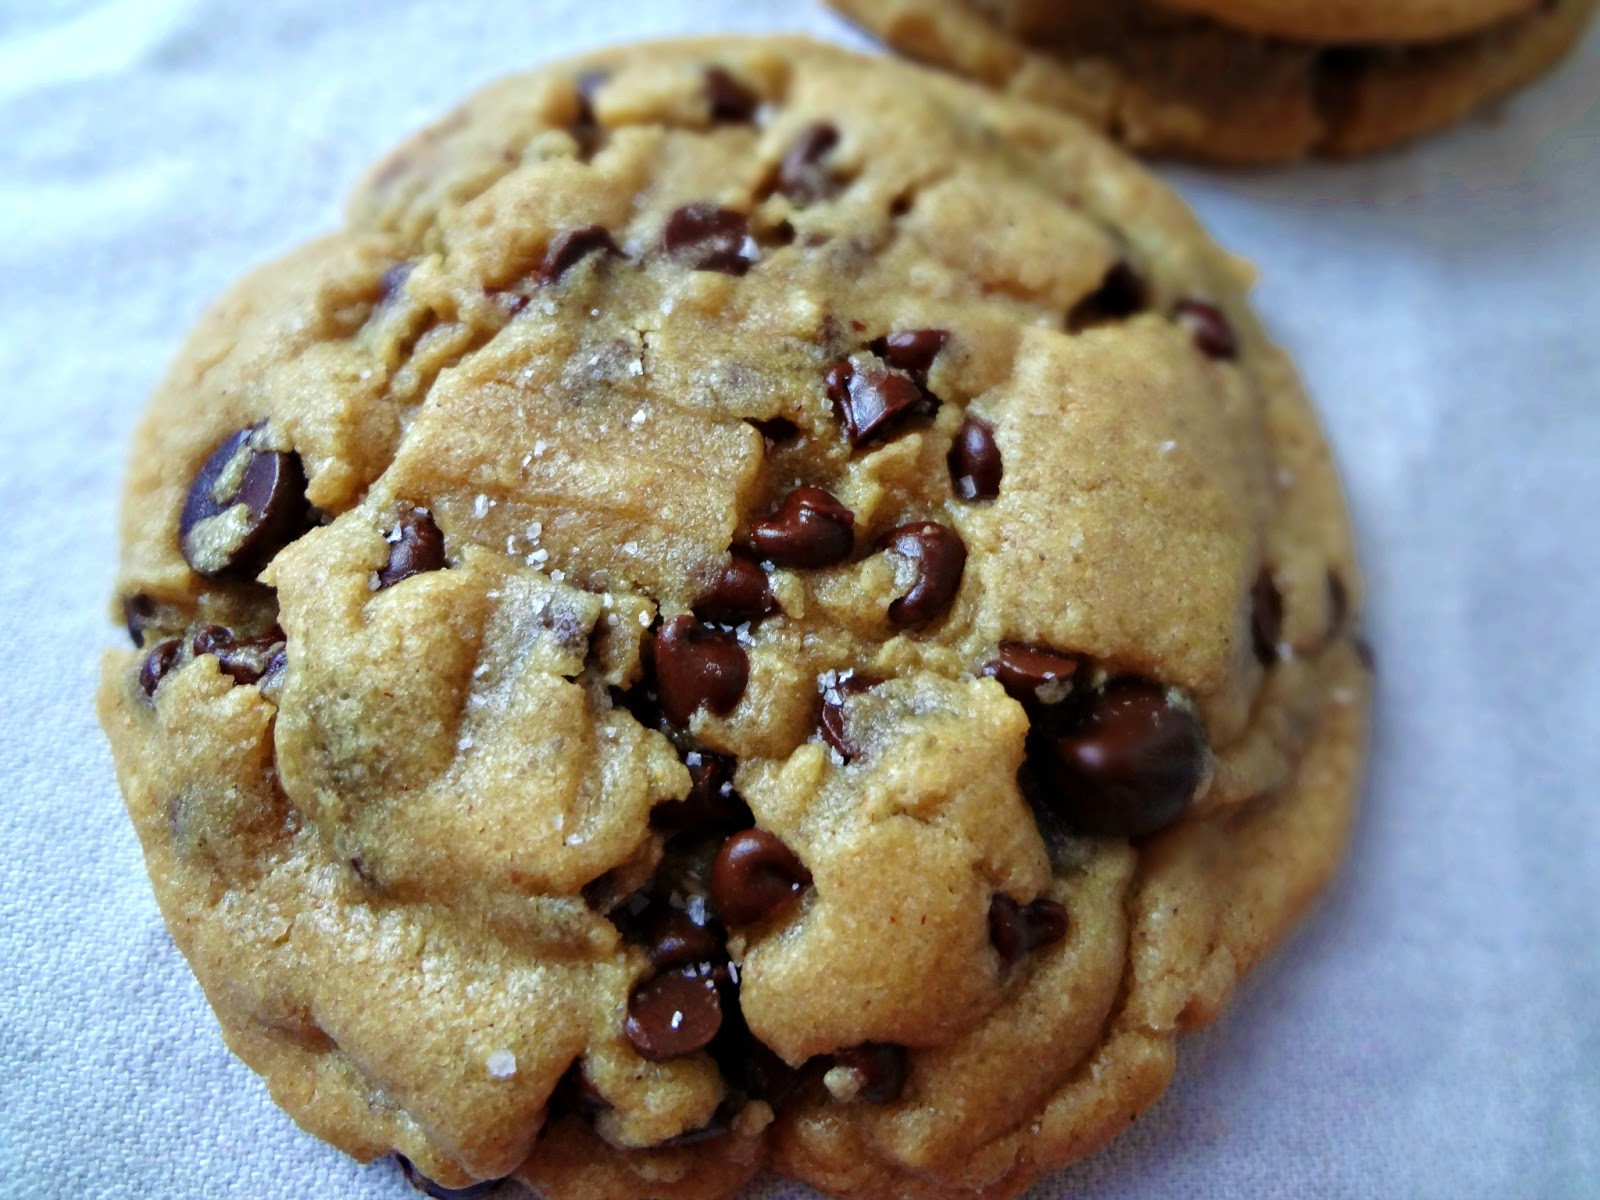 Peanut Butter Chocolate Cookies  The Cooking Actress Browned Butter Salted Peanut Butter